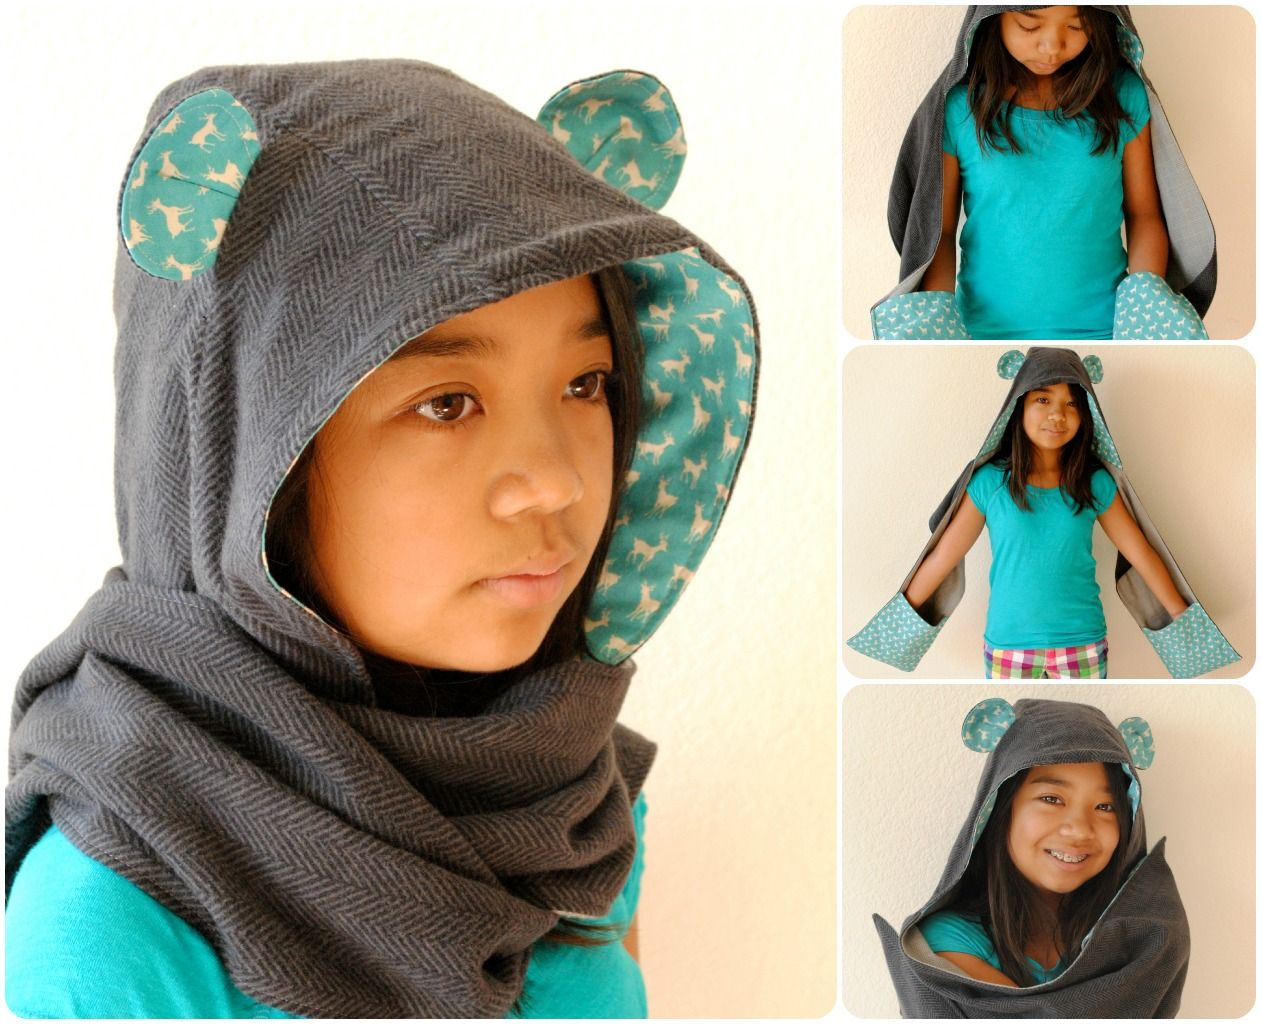 I Want To Make One Of These For Me A Cozy Hood Wrap I